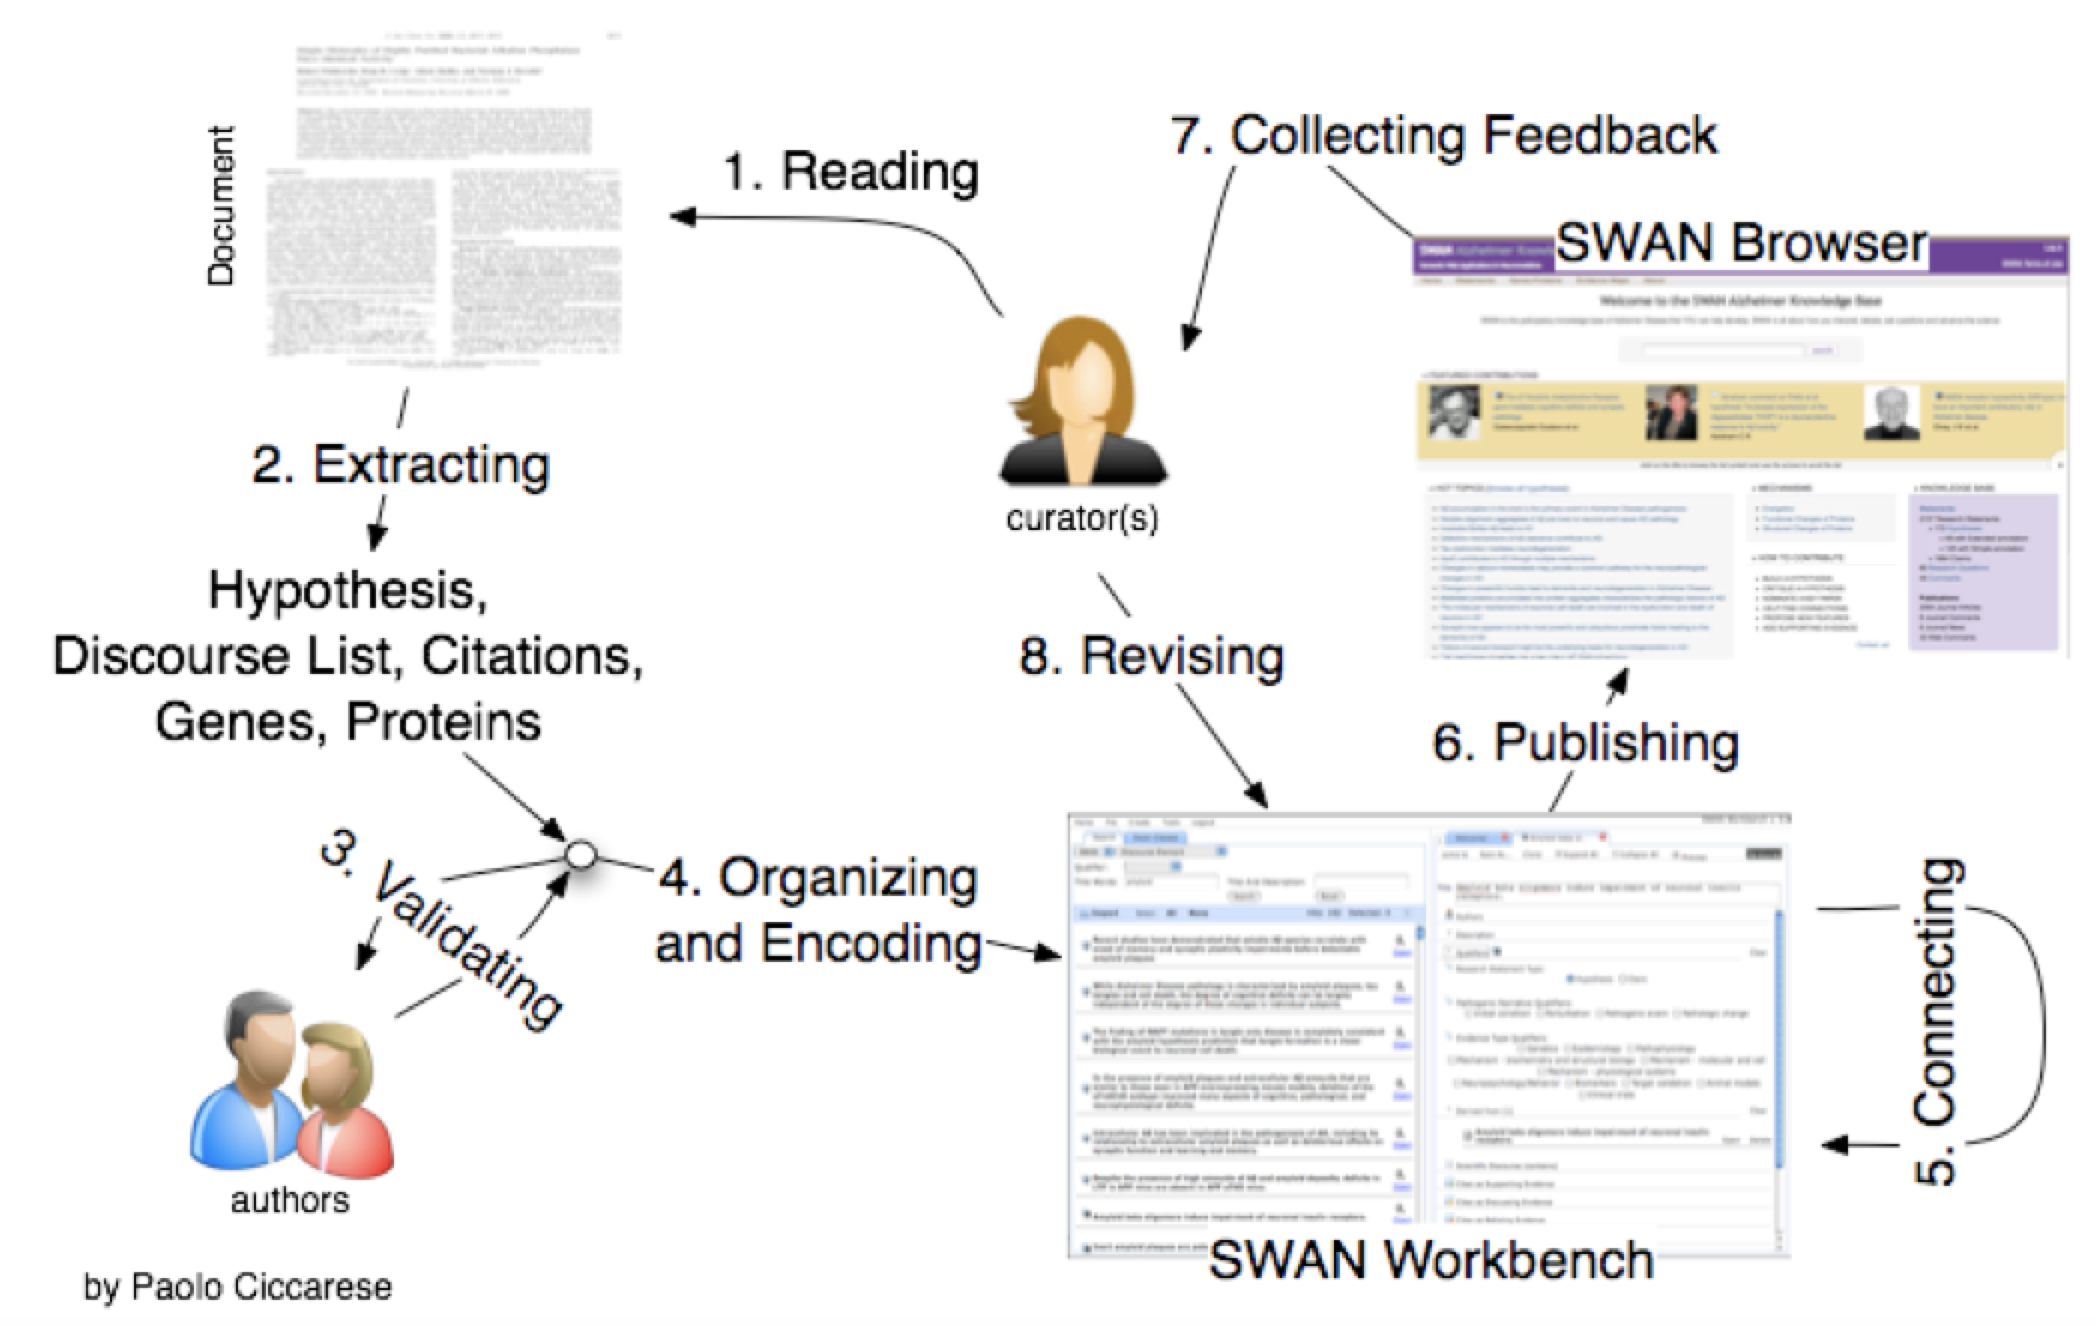 SWAN curation process by Dr. Paolo Ciccarese